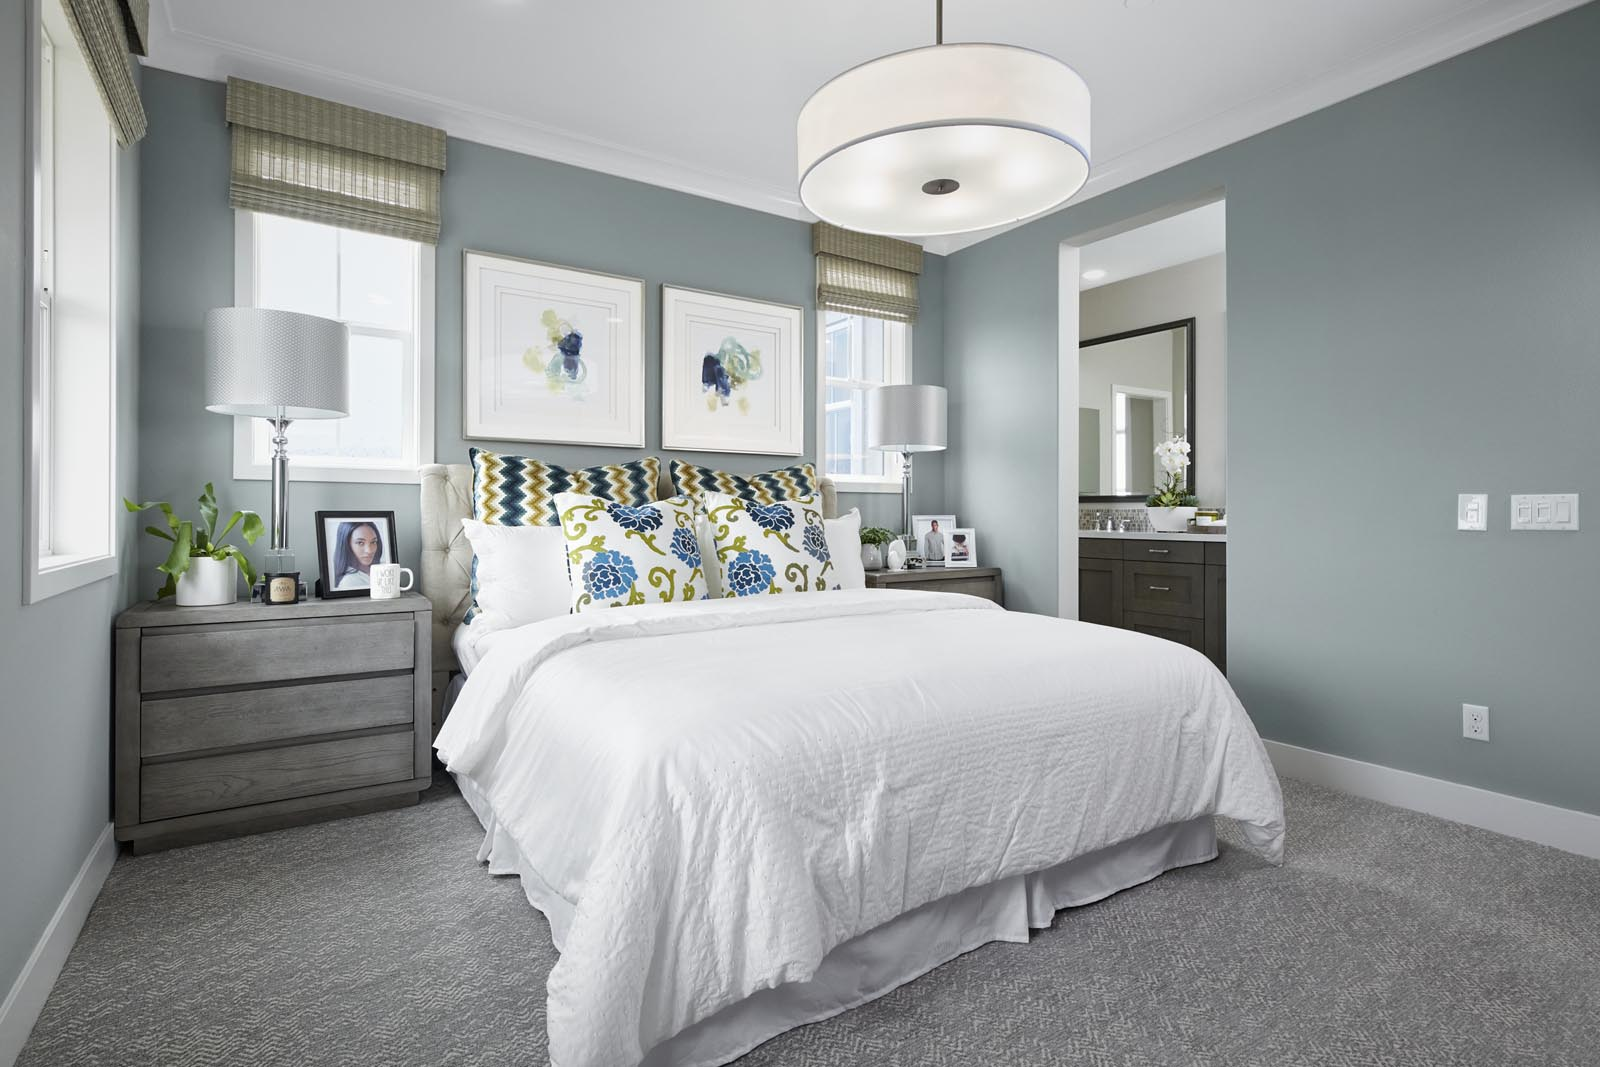 Master Bedroom   Residence 1   Tempo   New Homes in Rancho Cucamonga, CA   Tri Pointe Homes